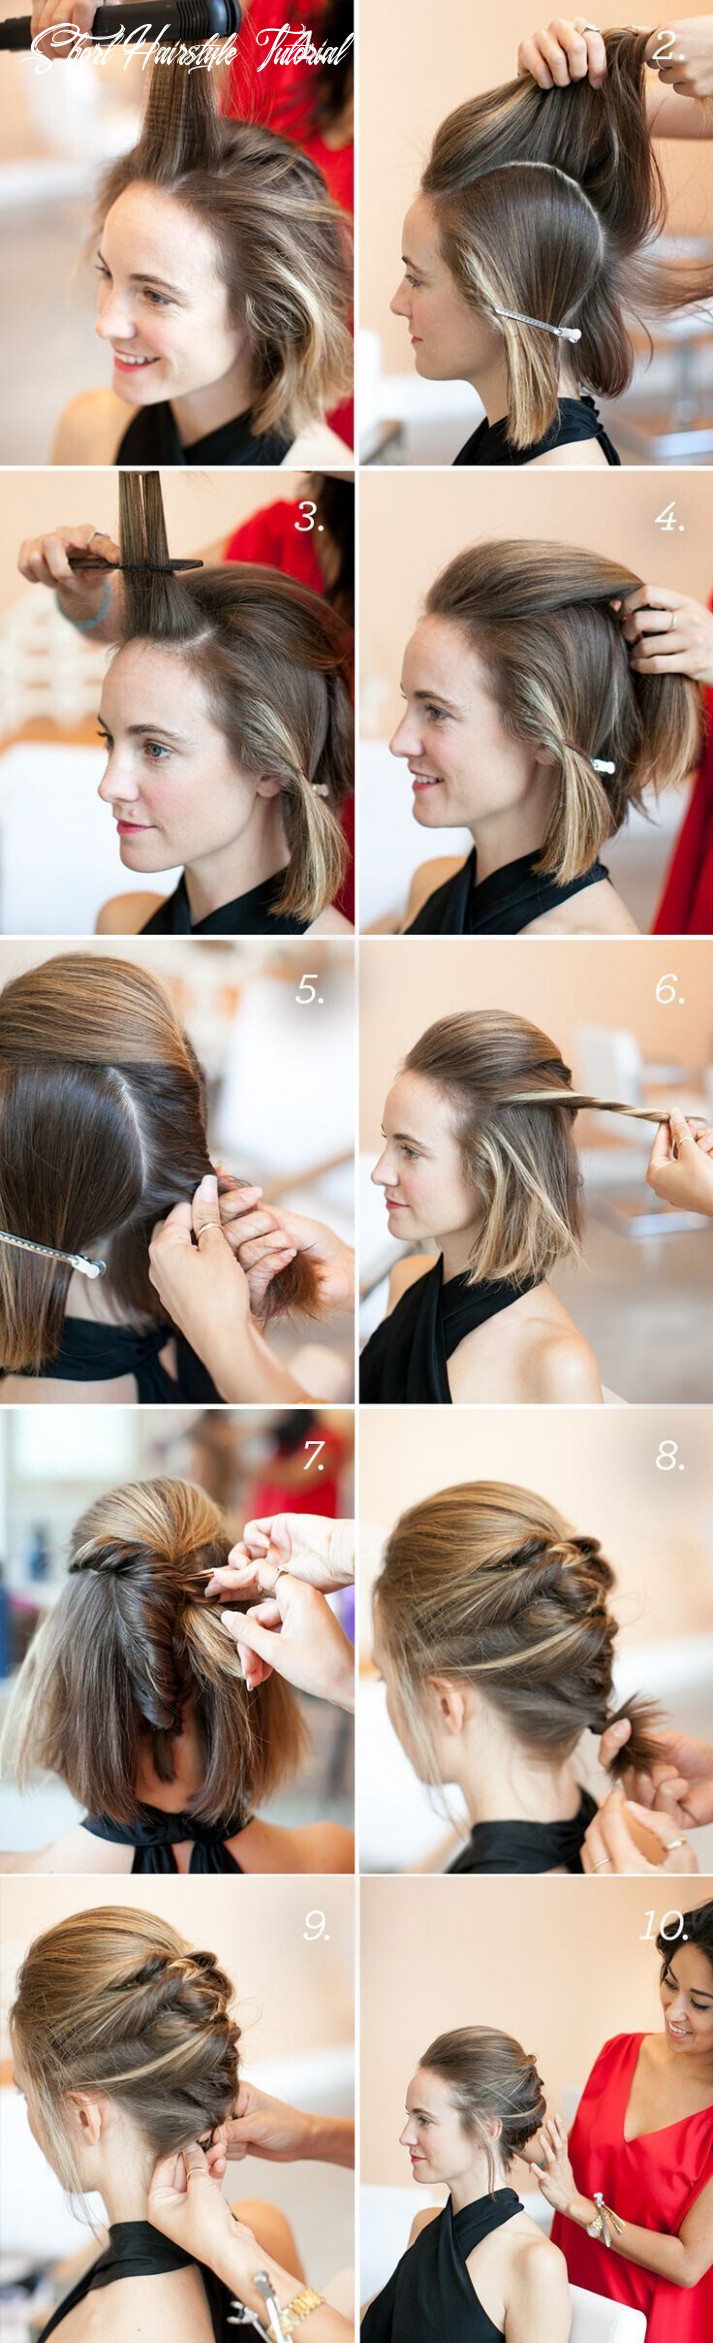 1111 short hairstyles for girls: with or without curls! (11